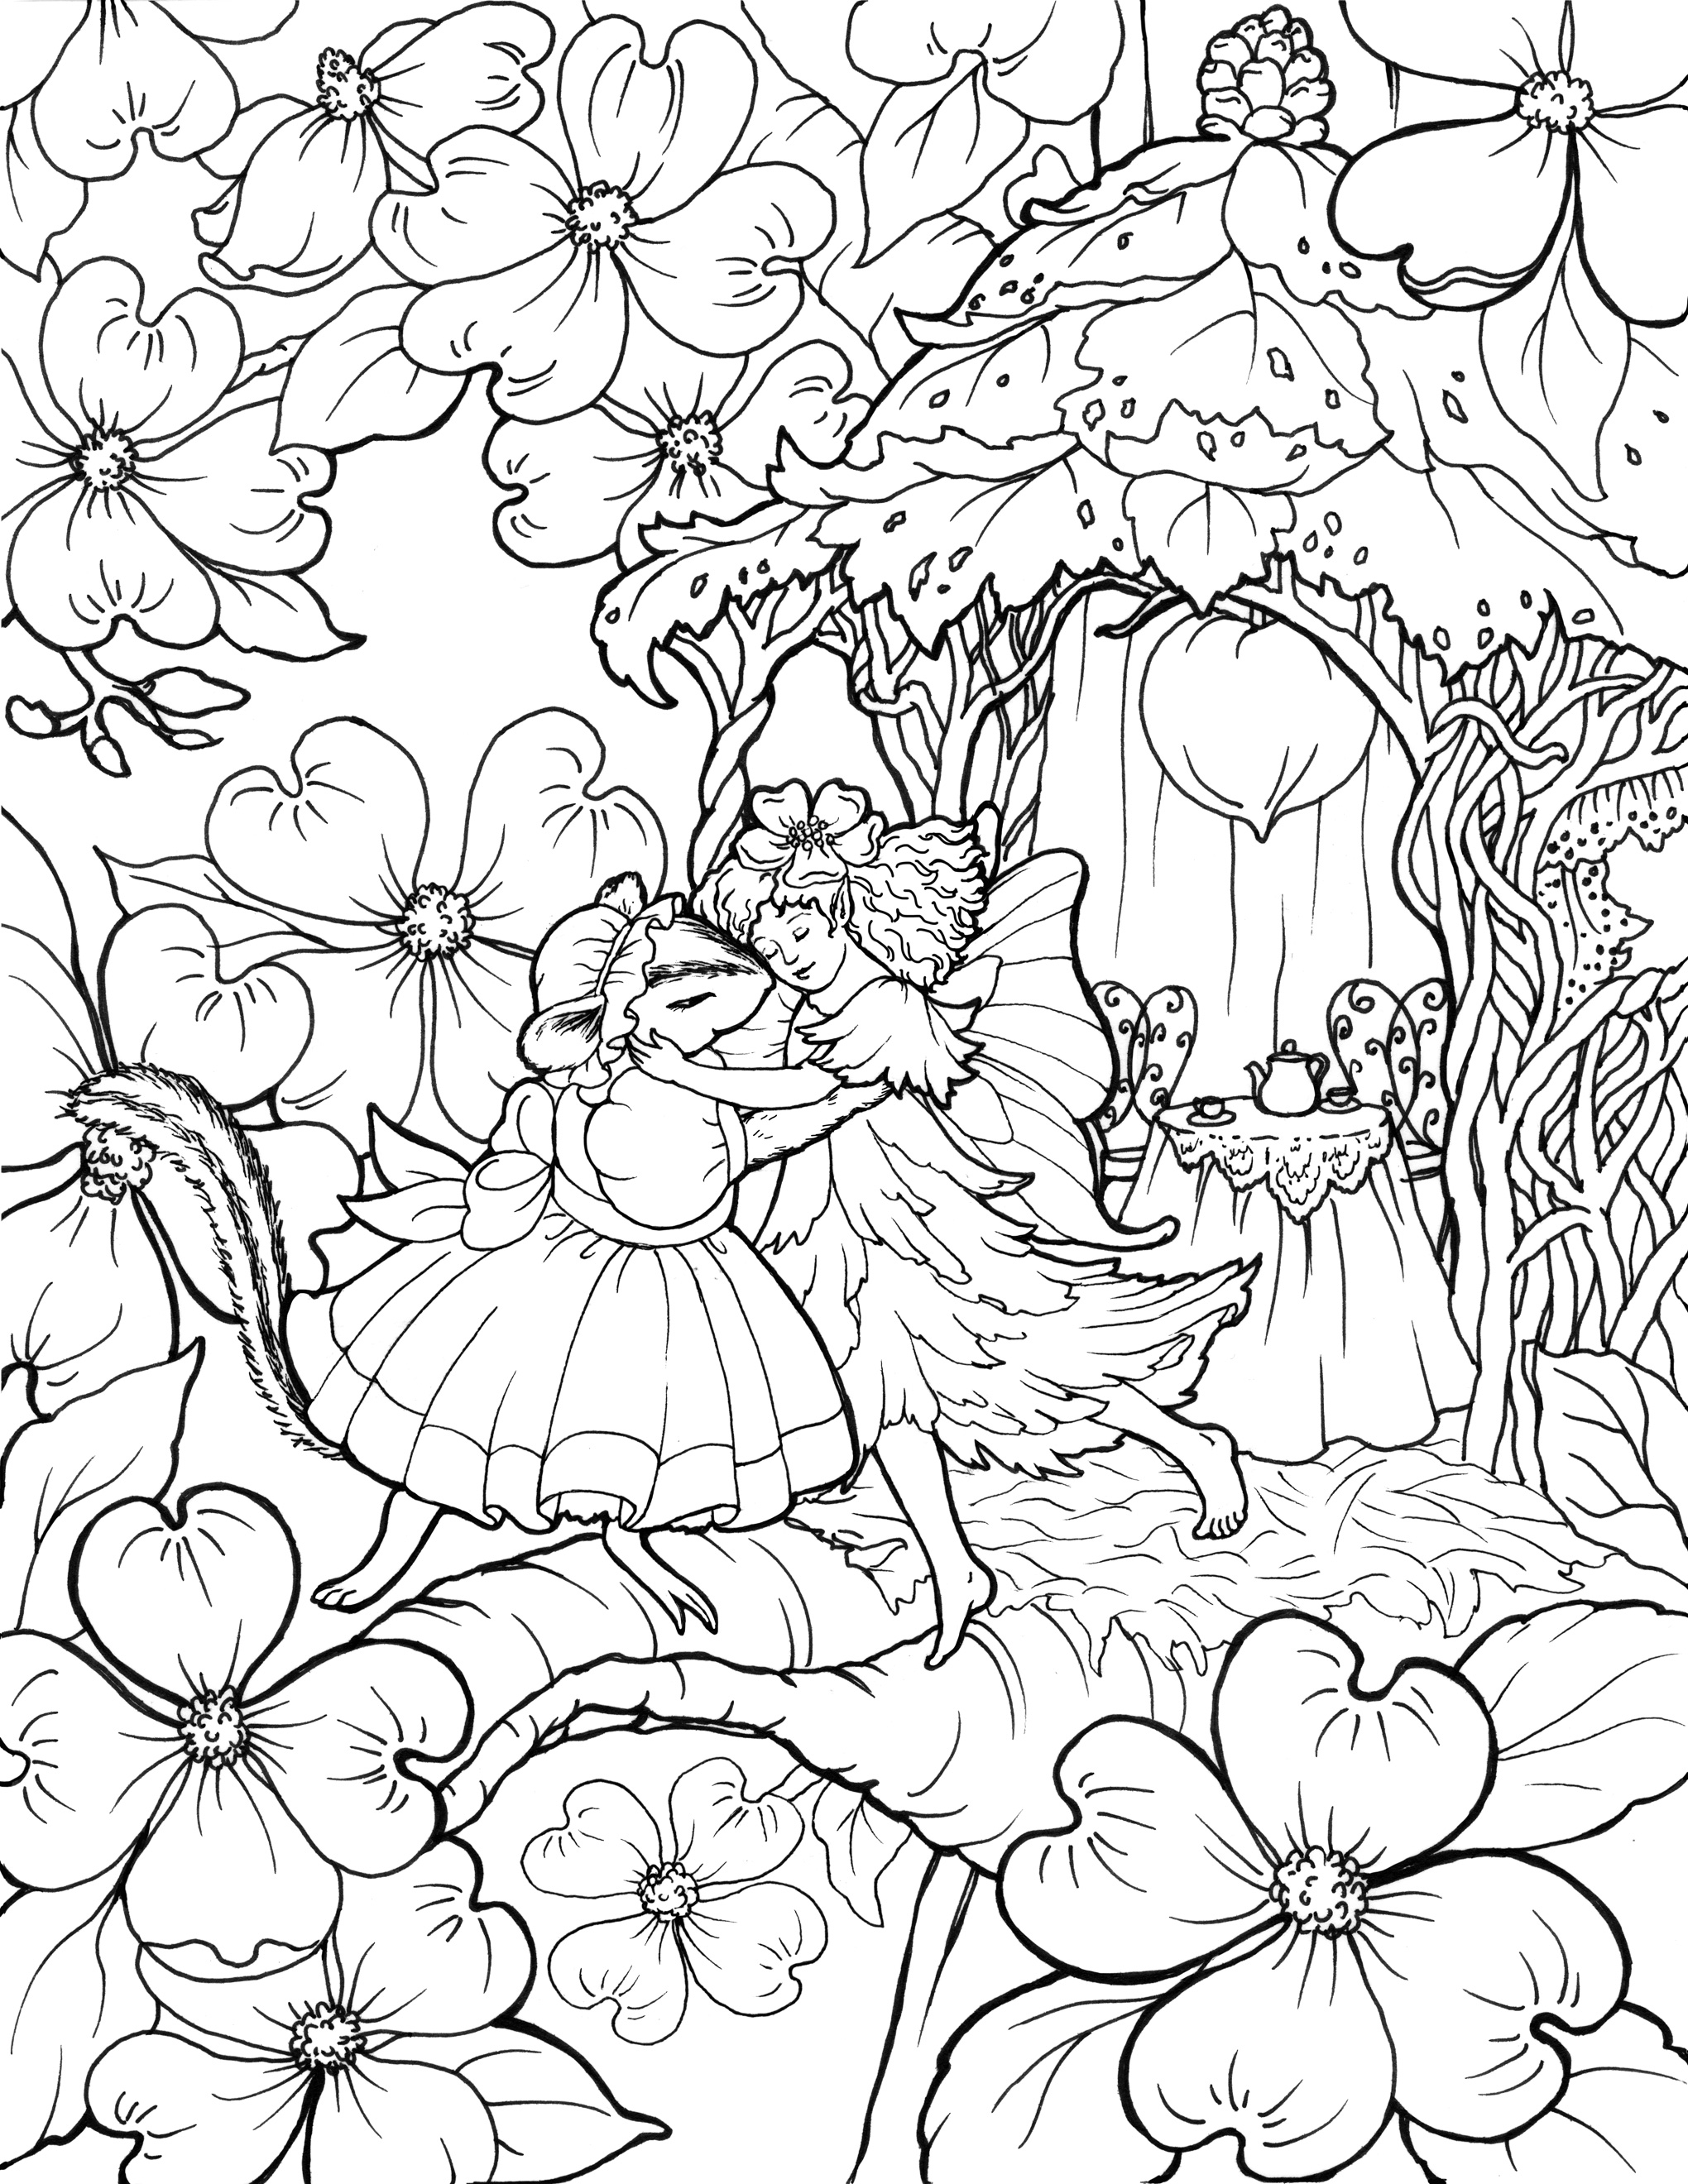 2040x2640 Exelent New York City Coloring Pages Images